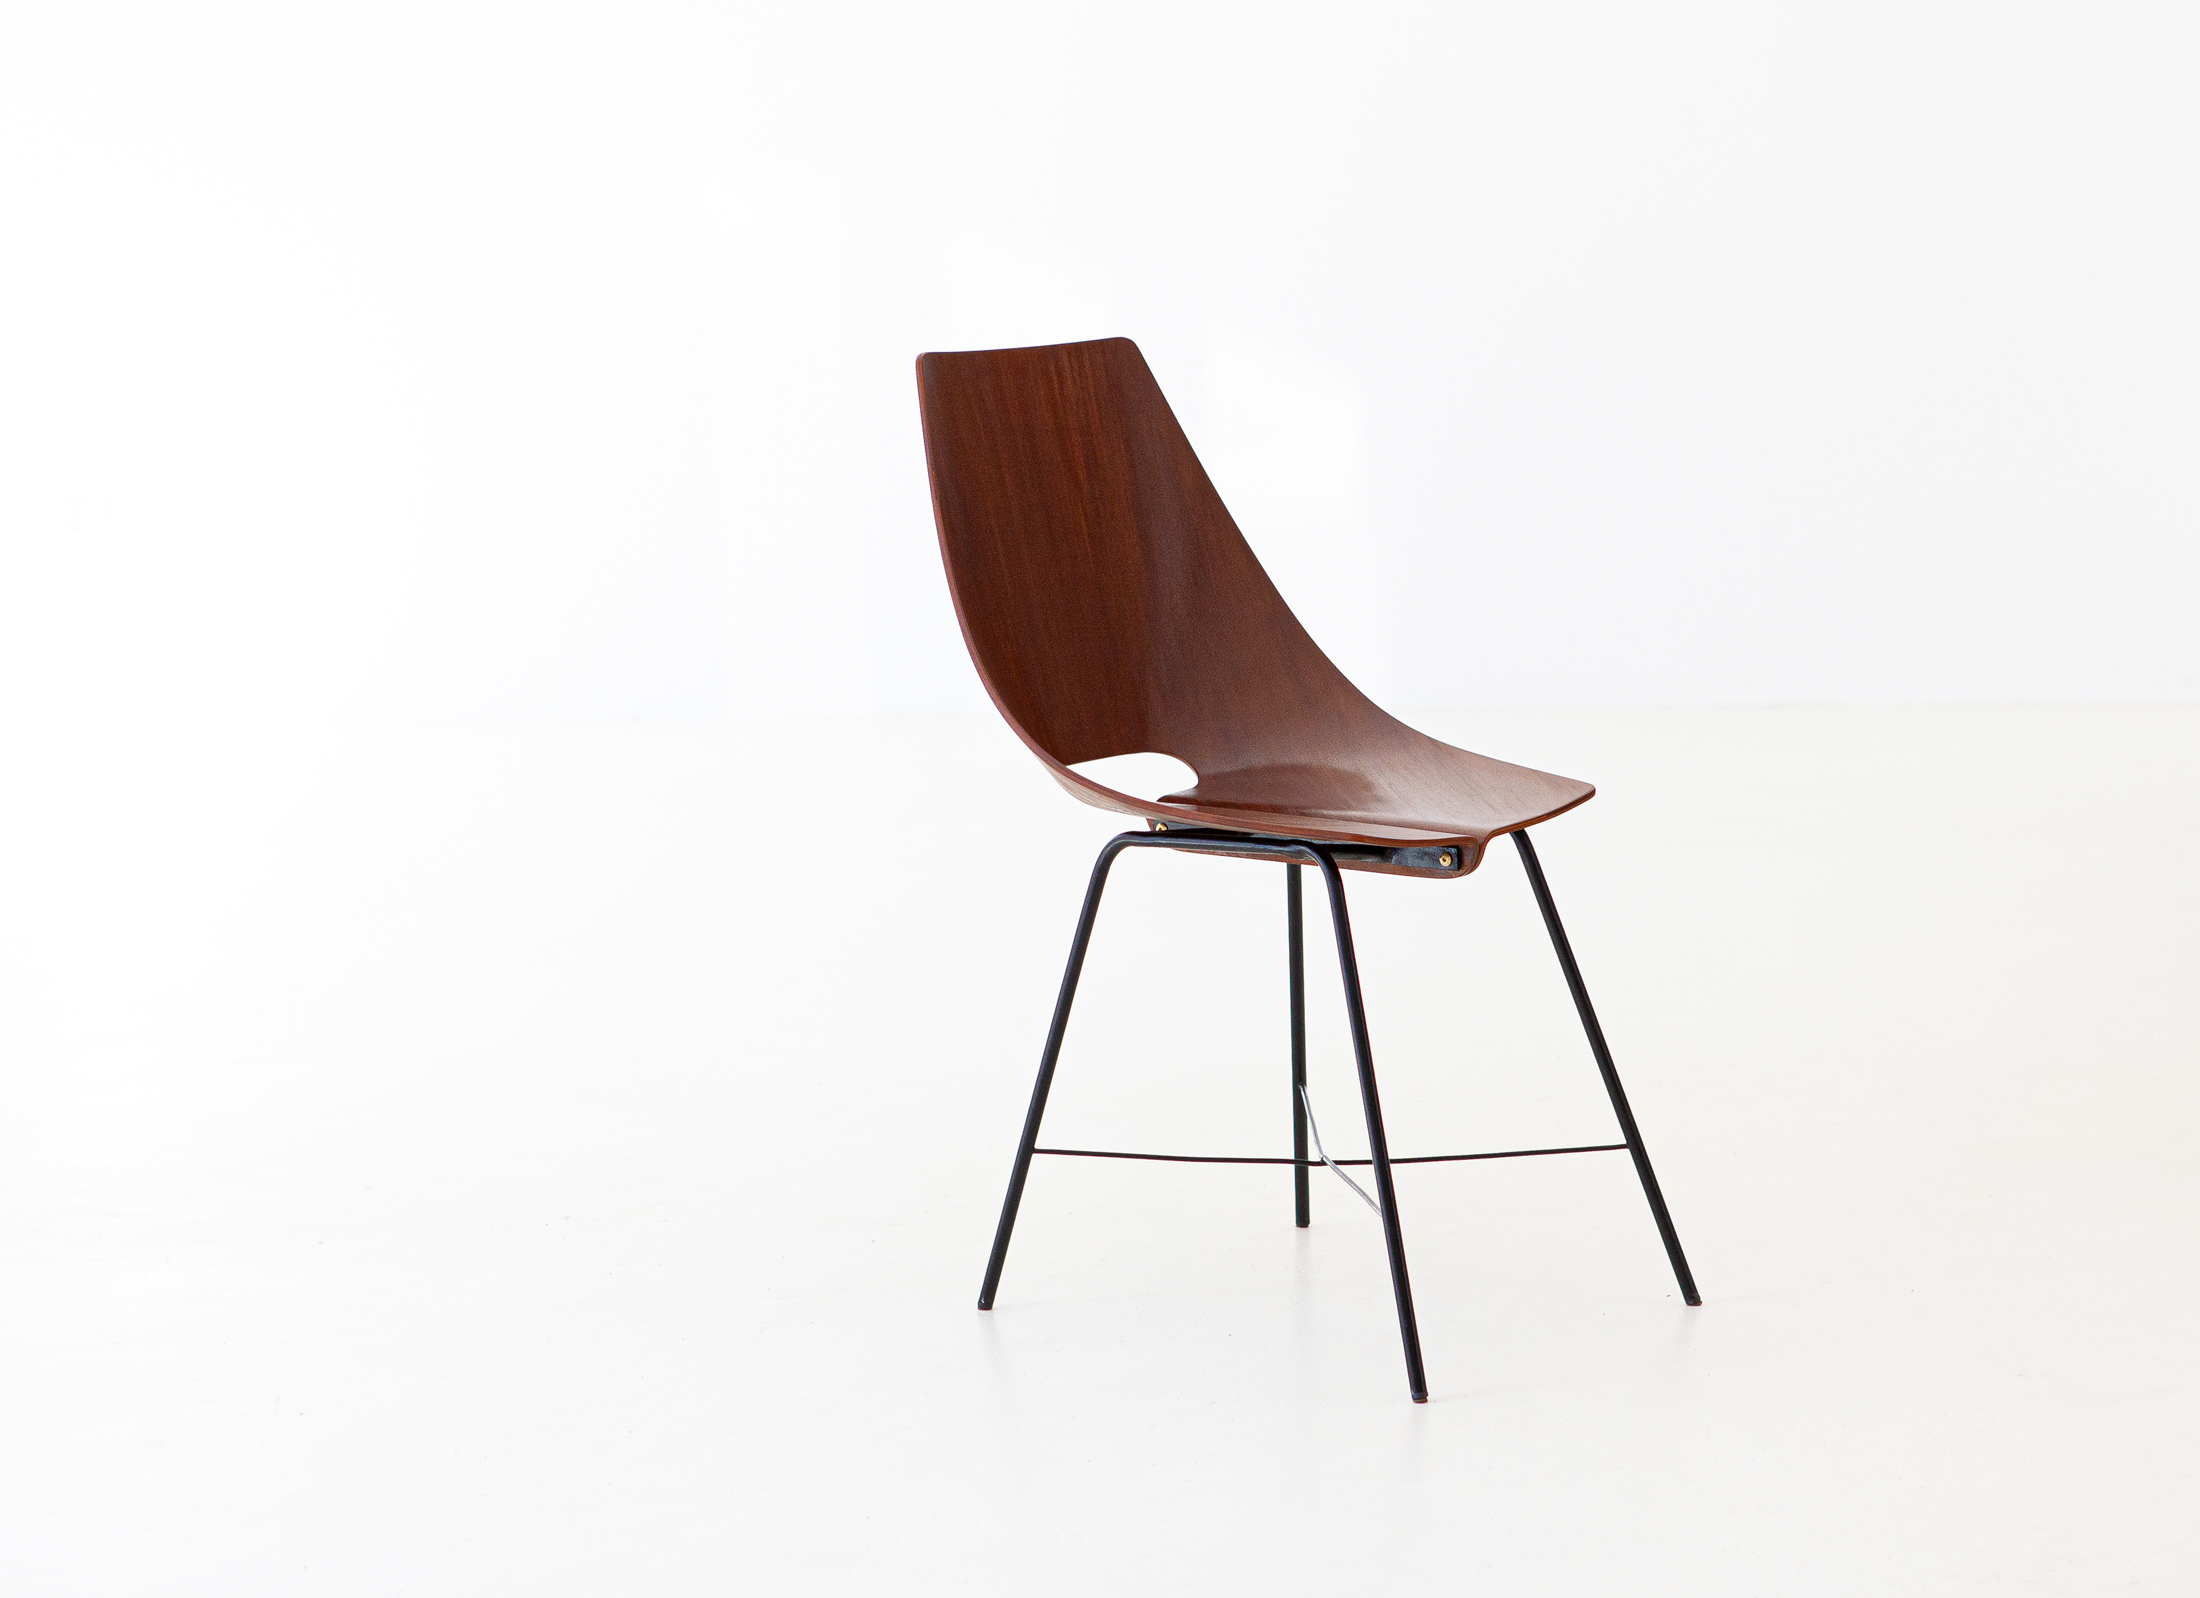 1950s-modern-curved-rosewood-chair-by-societa-compensati-curvati-1-se289